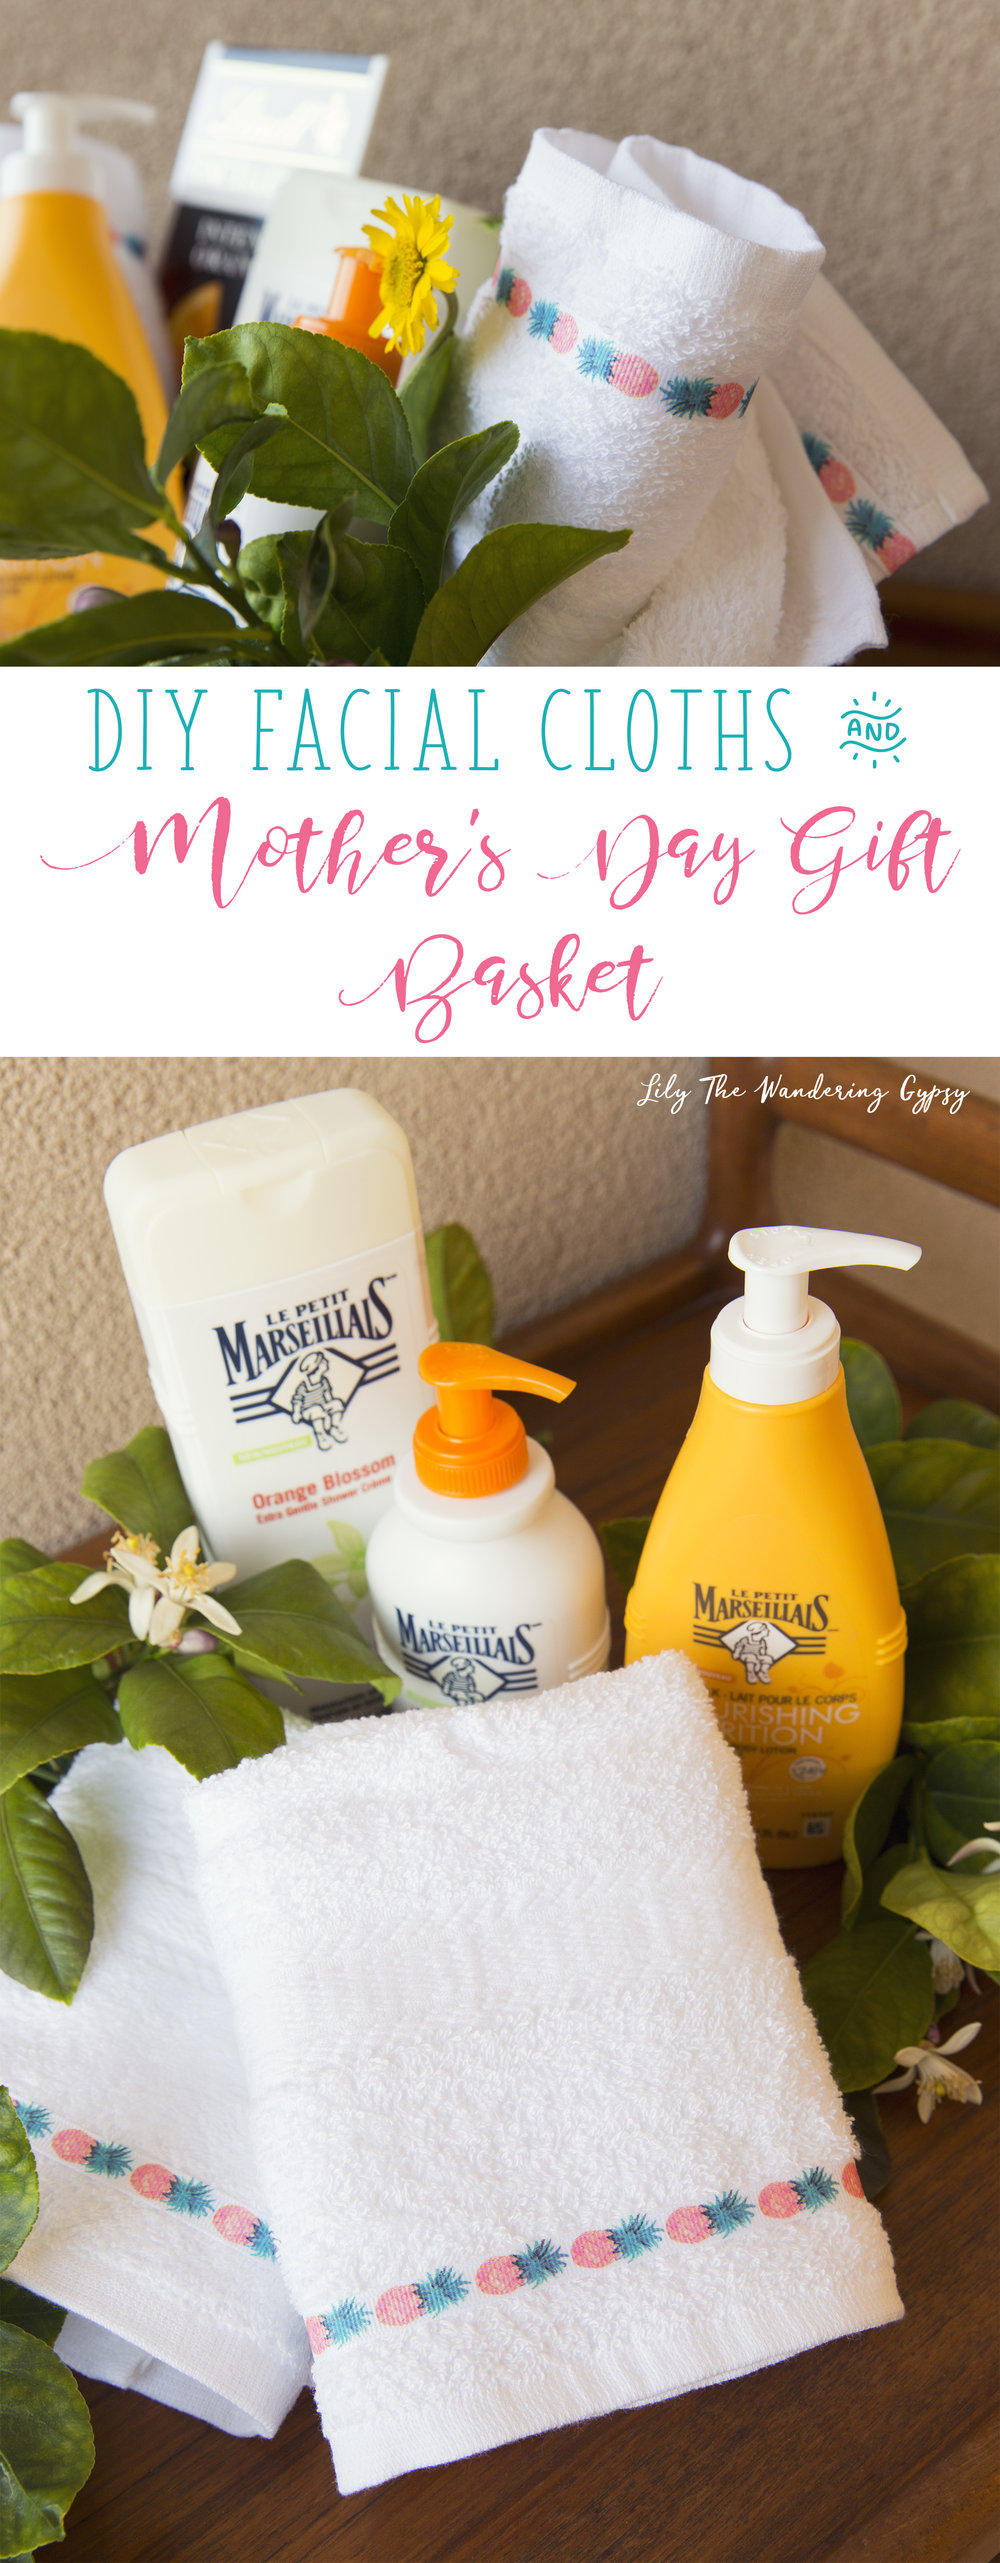 #SoFreshSoFrench - Mother's Day Gift Basket DIY